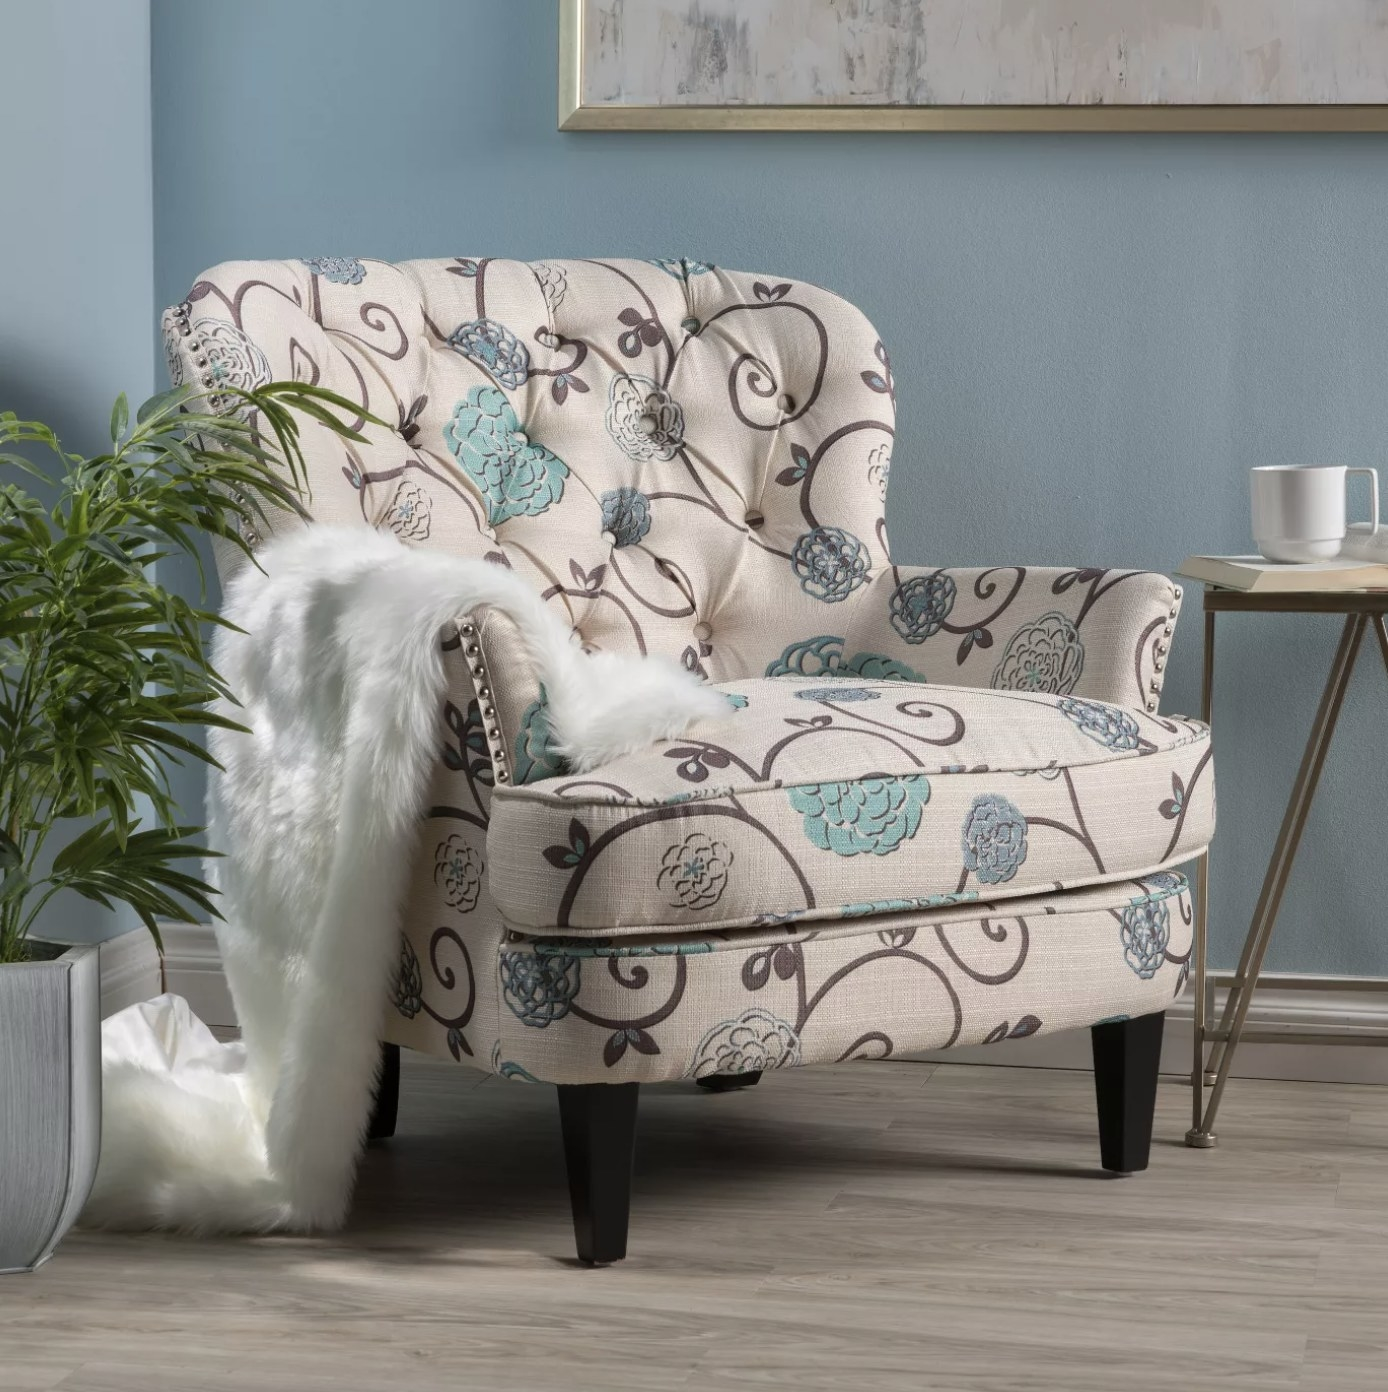 The floral accent chair